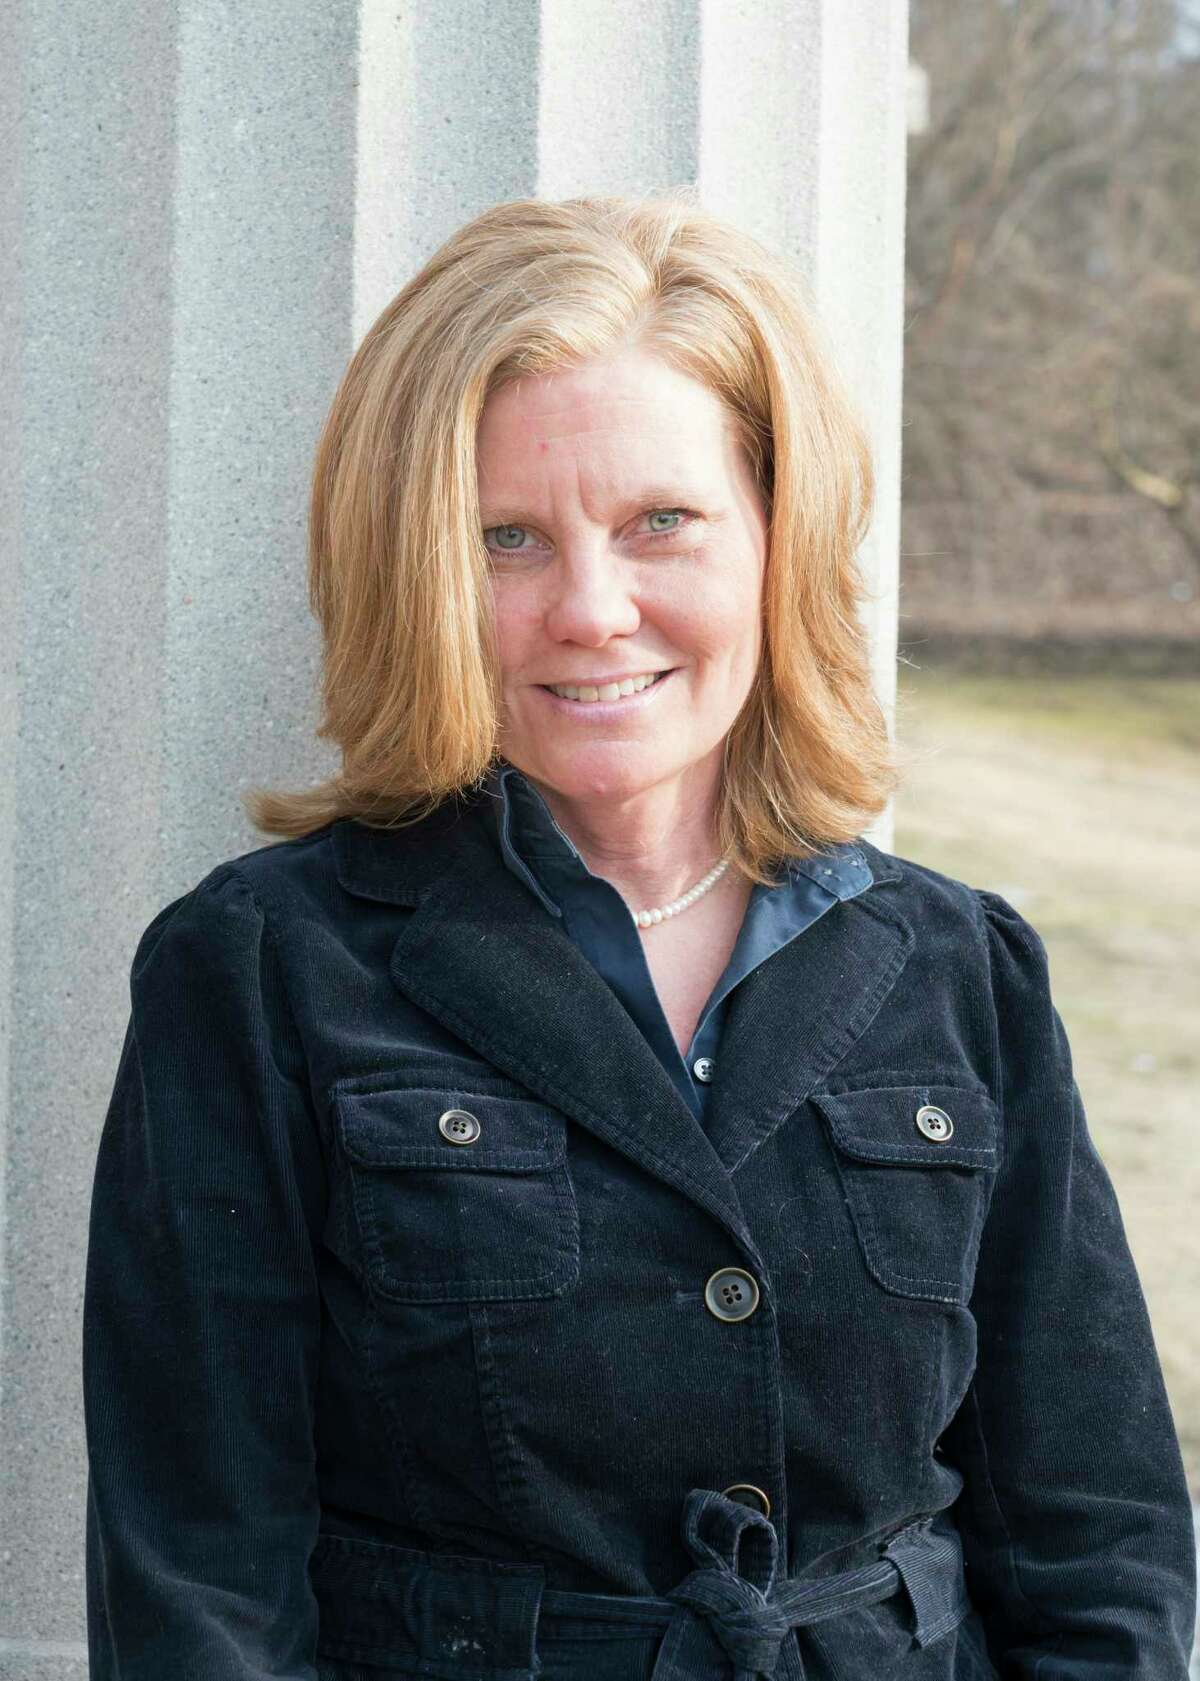 Patricia Morrison won the primary against Democratic Saratoga Springs Commissioner of Finance Michelle Madigan, but lost the election. (Provided photo)